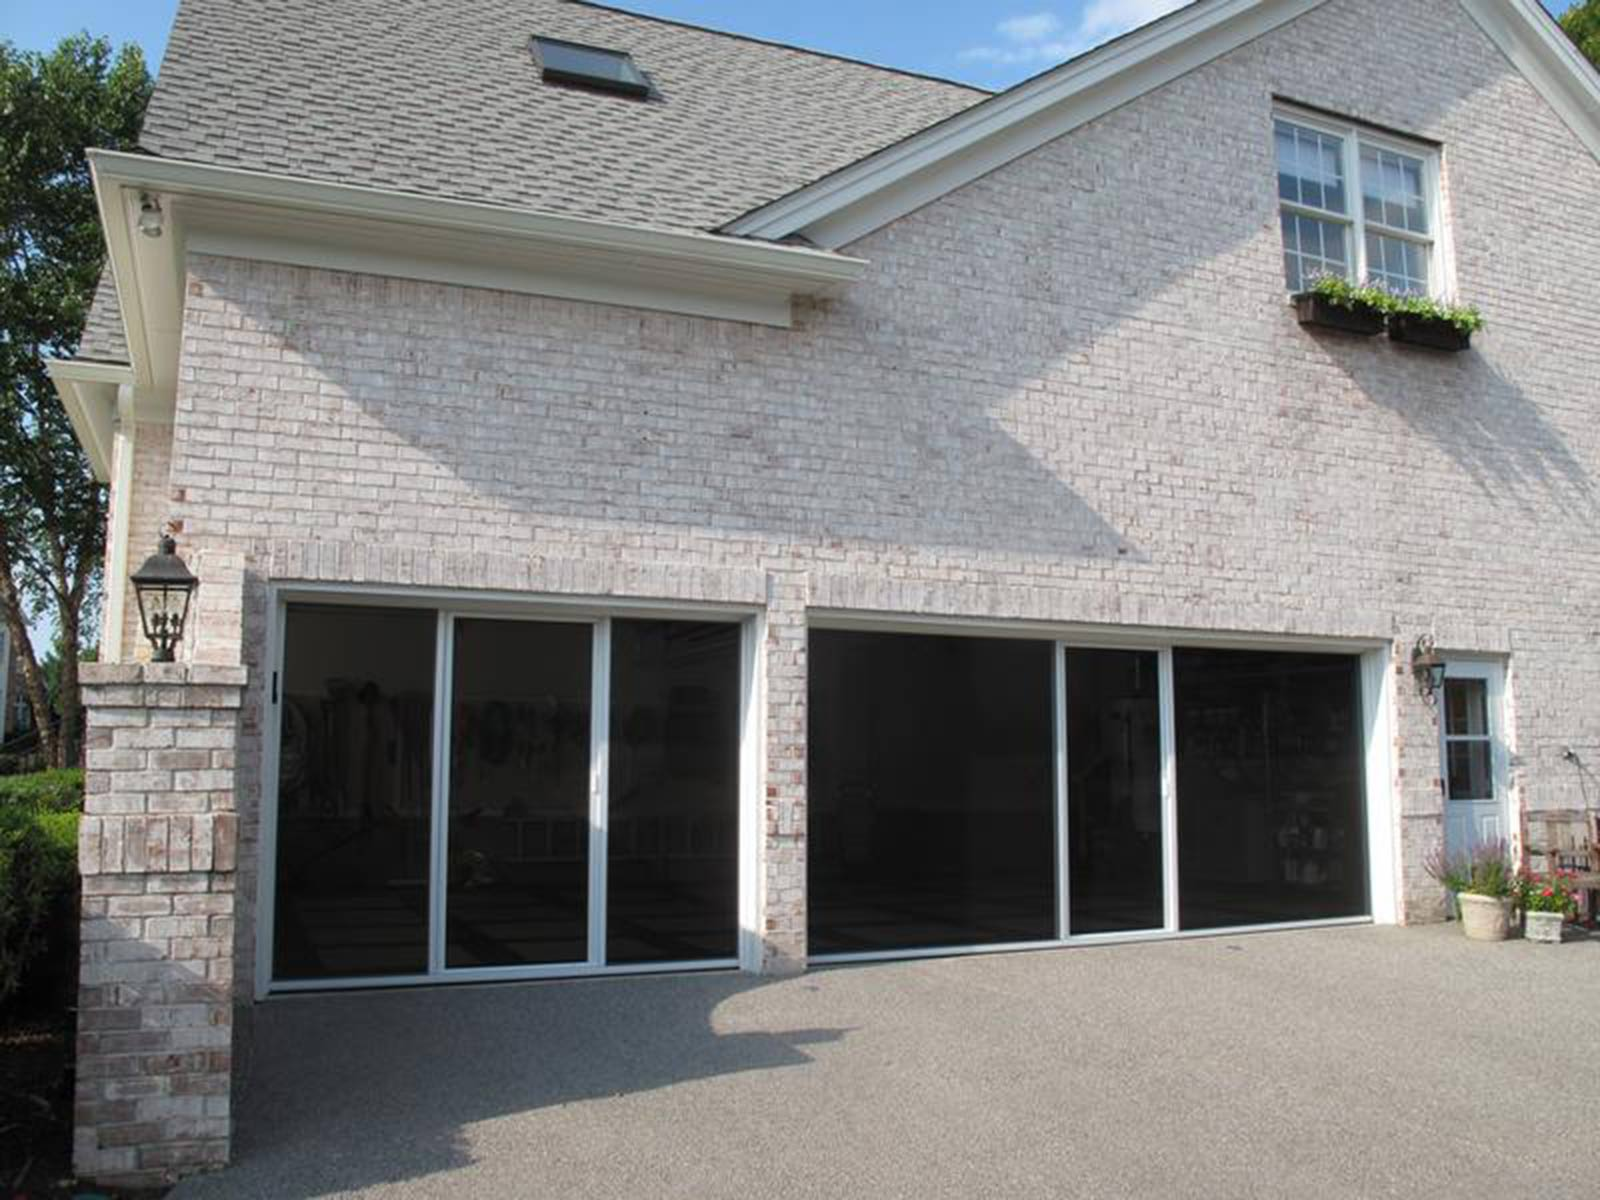 privacy new image for screen doors openings product garage door lifestyle screens